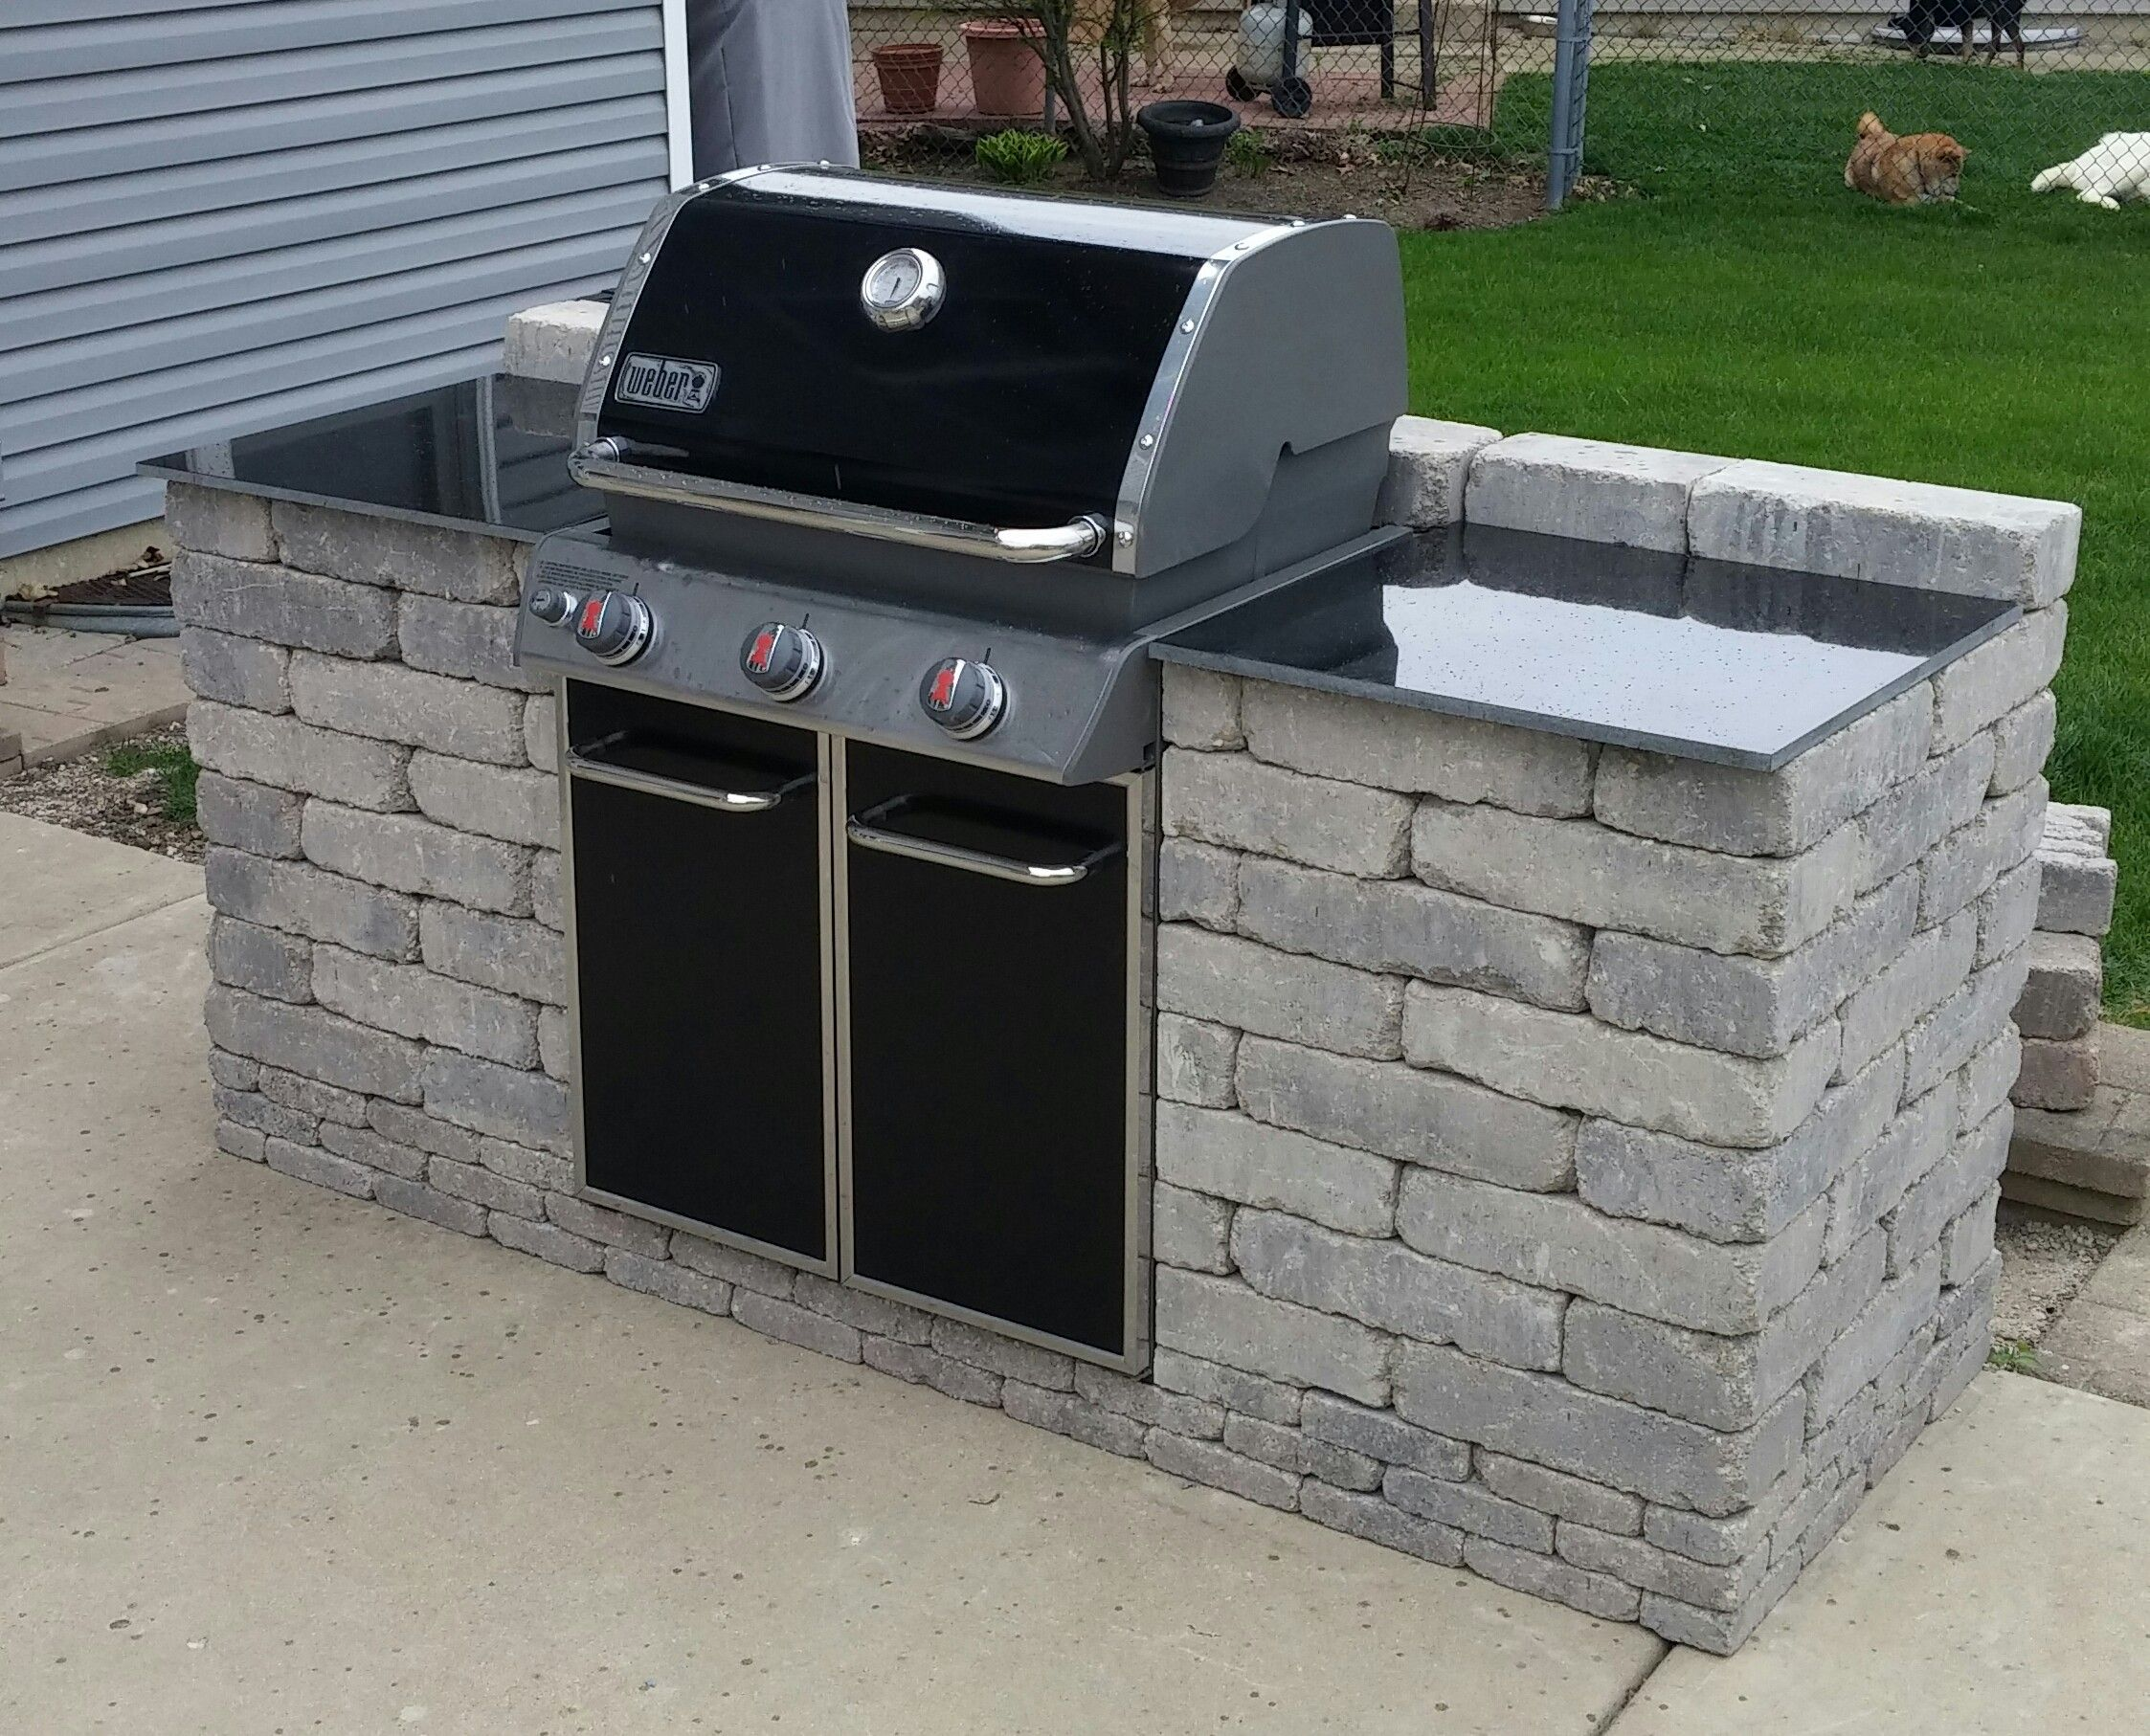 Outdoor Grill Barbeque Grill Enclosure Projects To Try Outdoor Barbeque